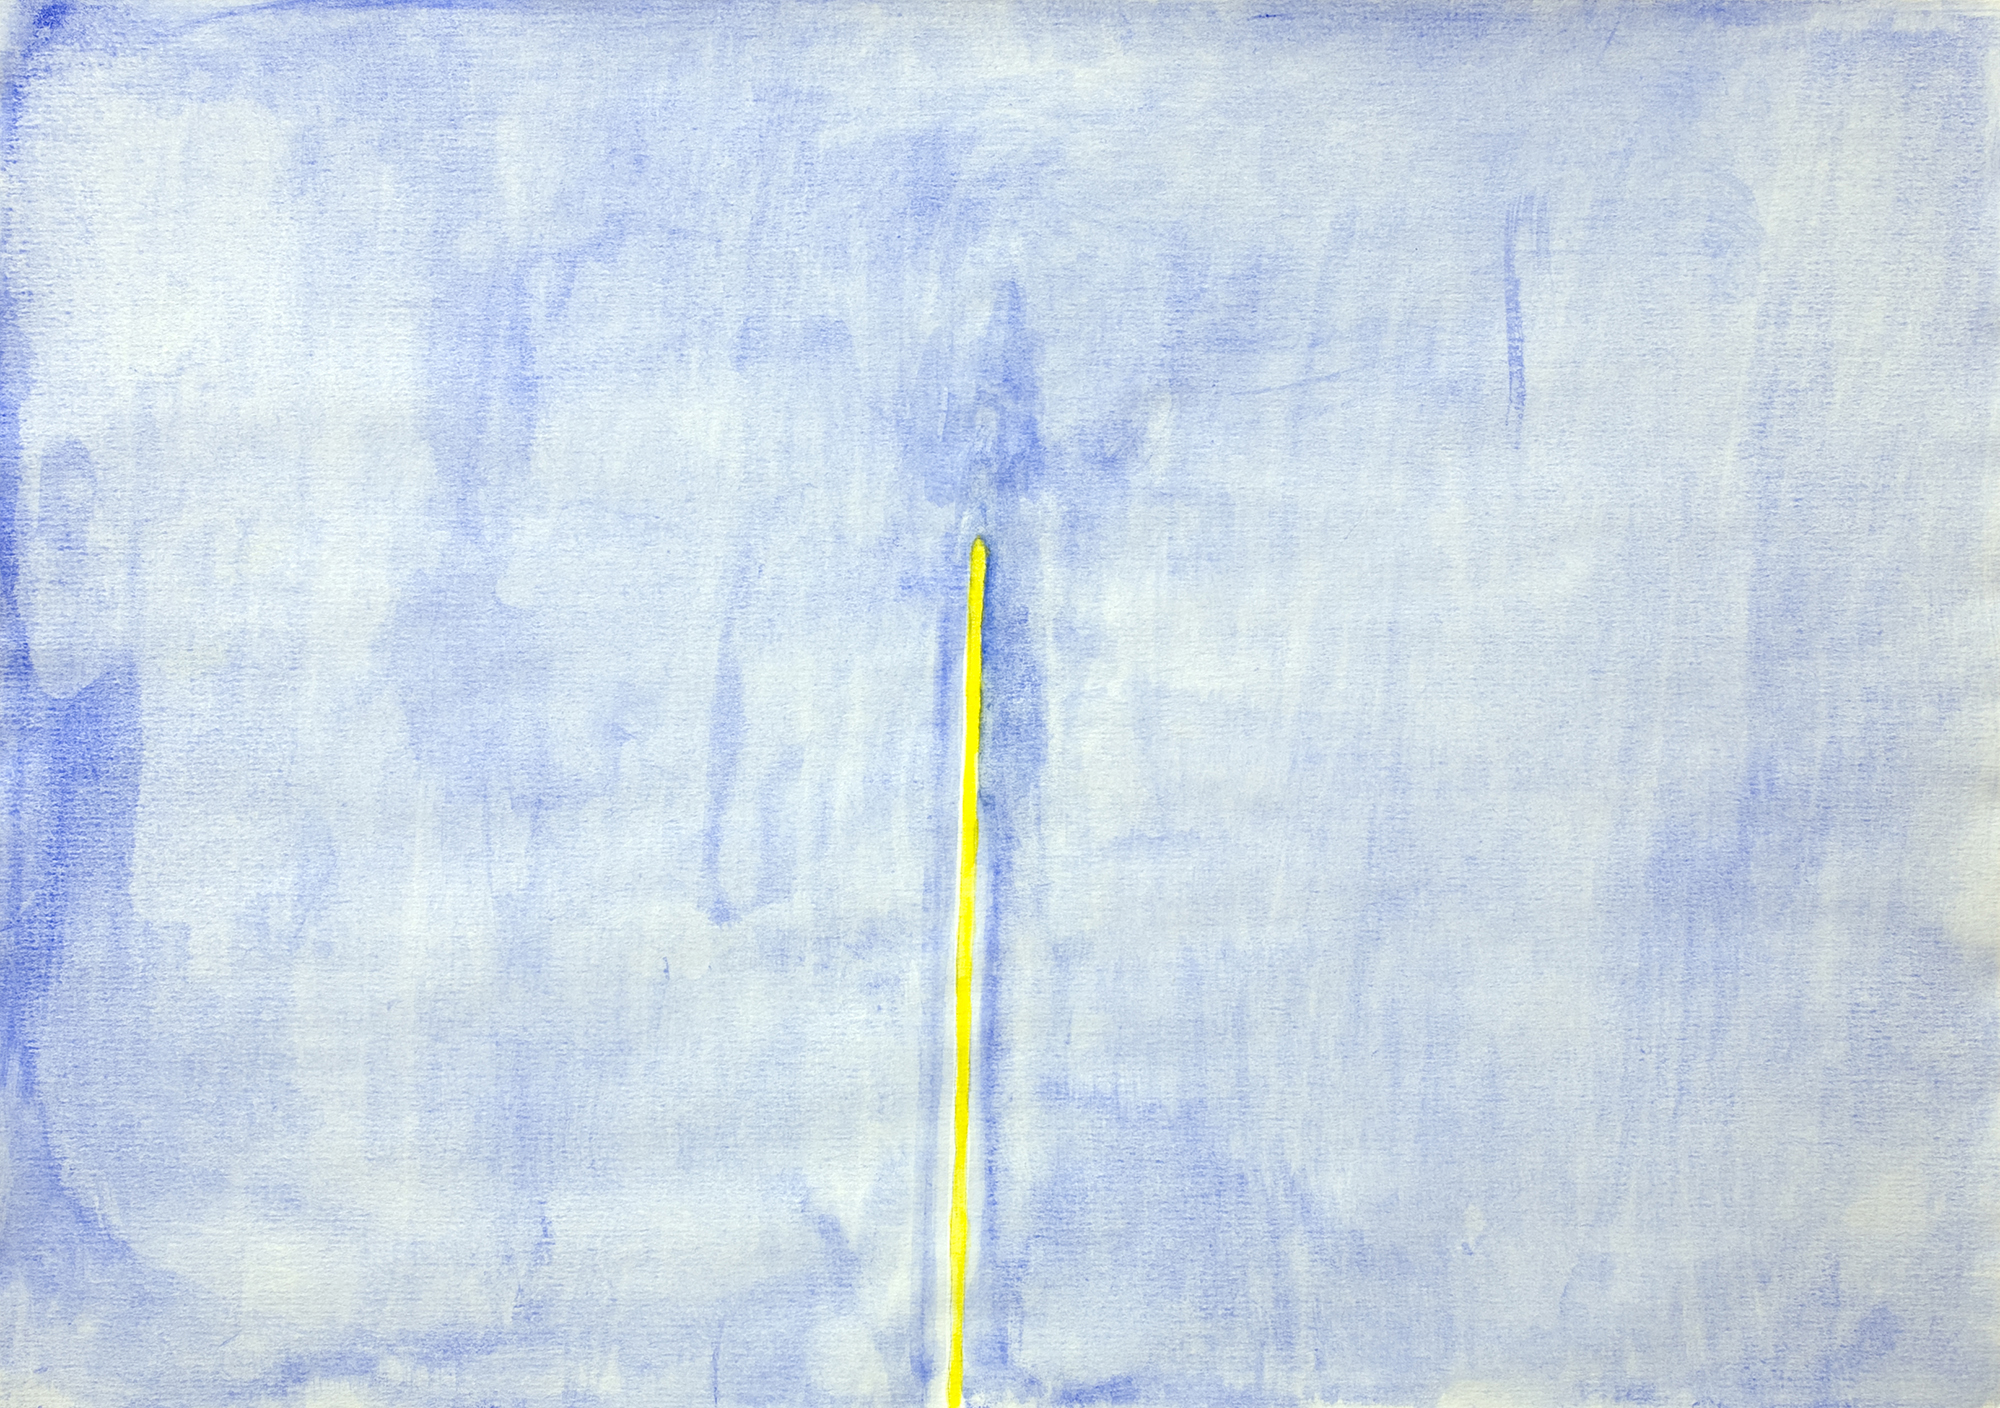 Untitled, 2006, gouache on paper, 31 x 42 cm